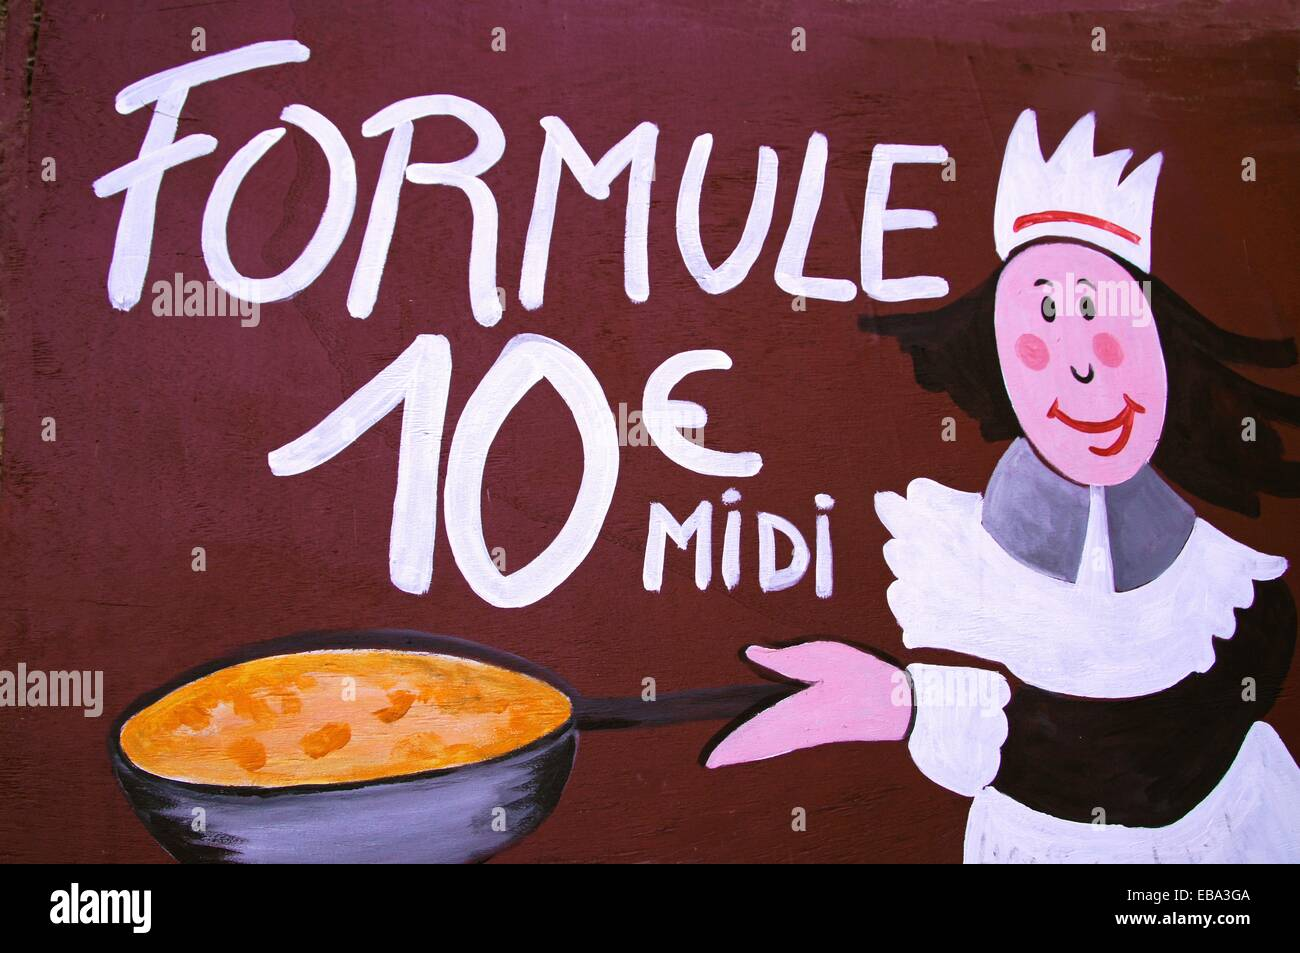 ´Formule Midi´ sign for the midday menu at Terrasson, Dordogne, Aquitaine, France - Stock Image